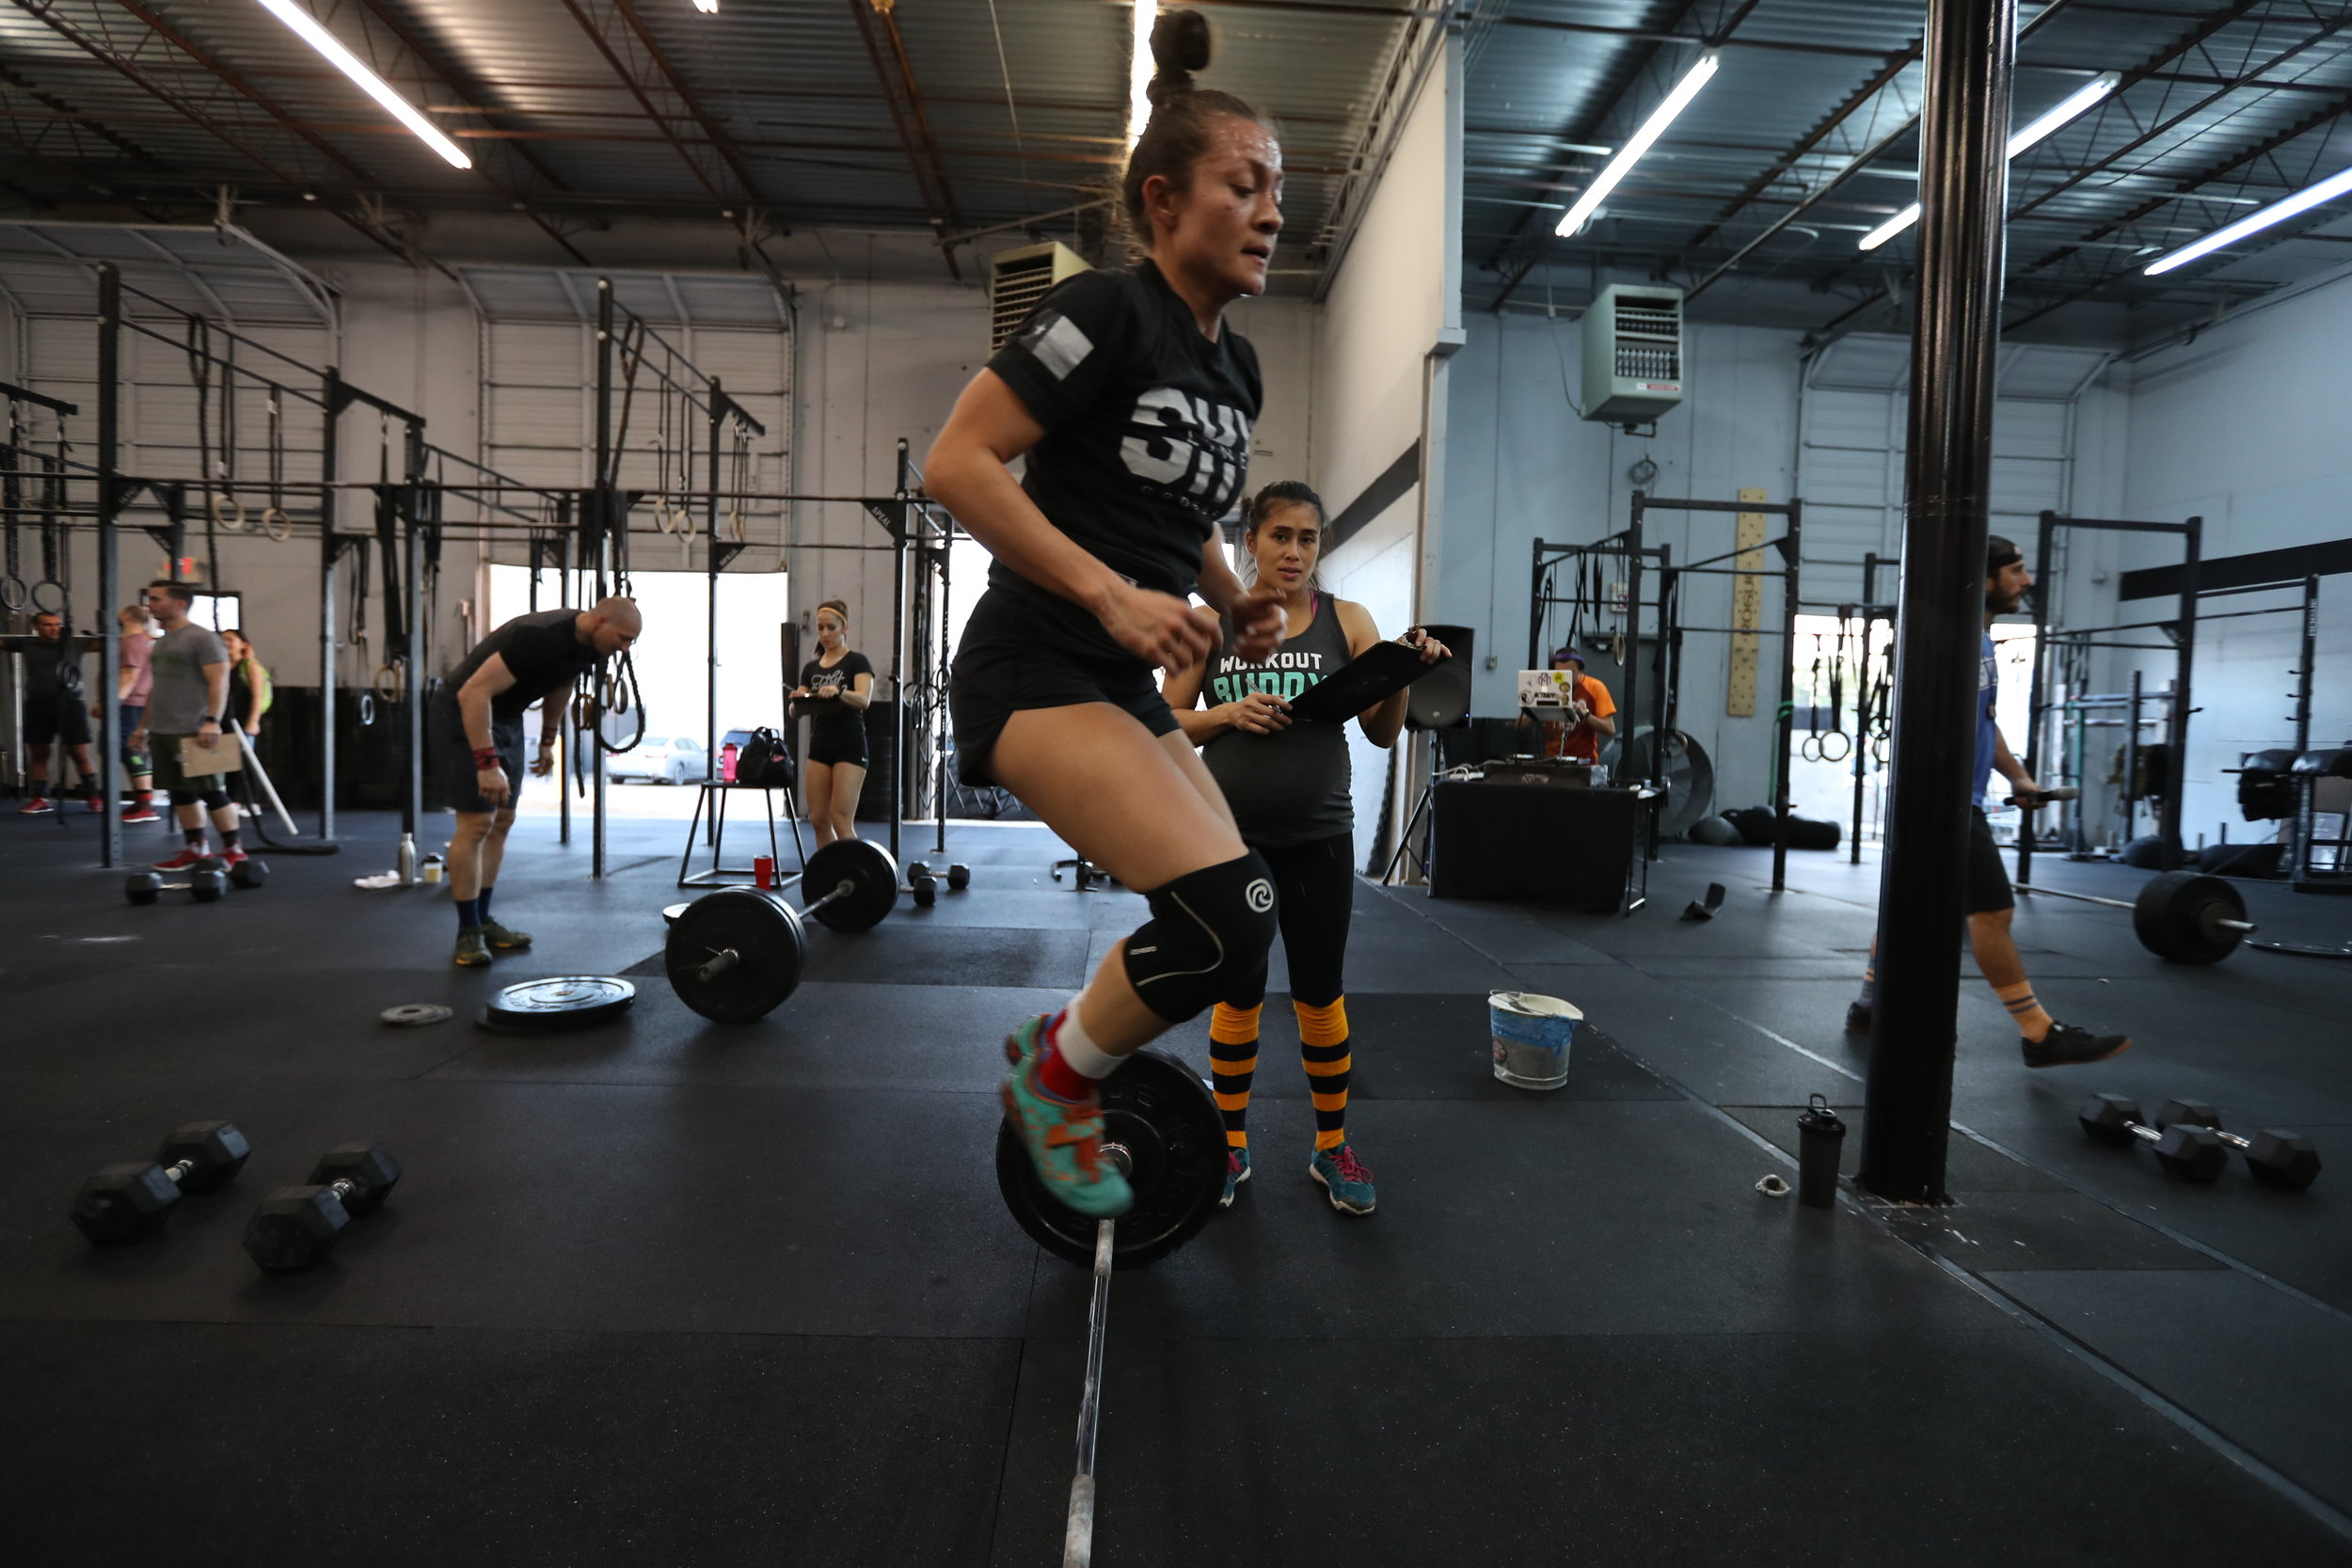 Isabel doing burpees over bar last year.  Hoping for a quick recovery post surgery!